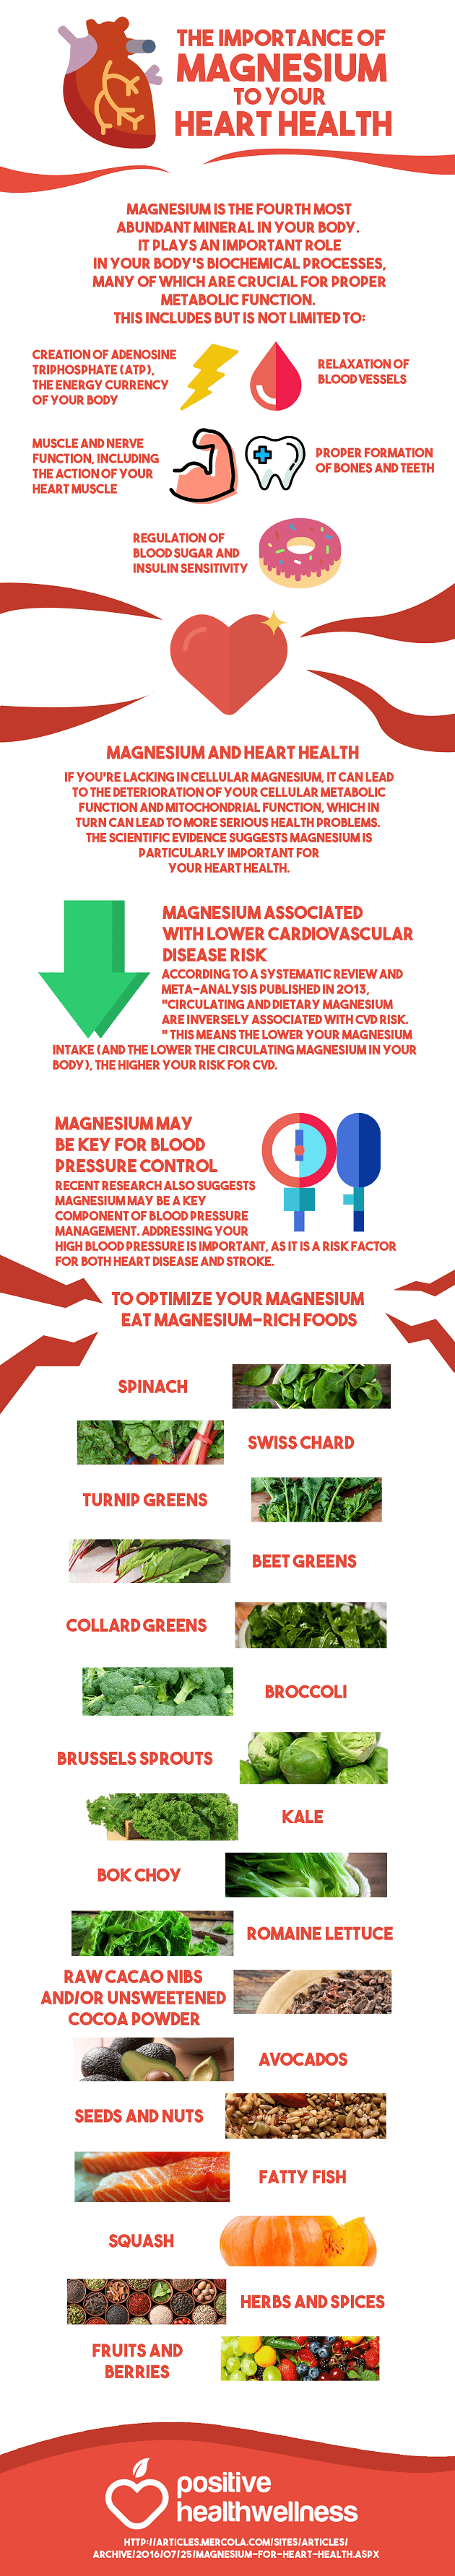 The Importance of Magnesium to Your Heart Health